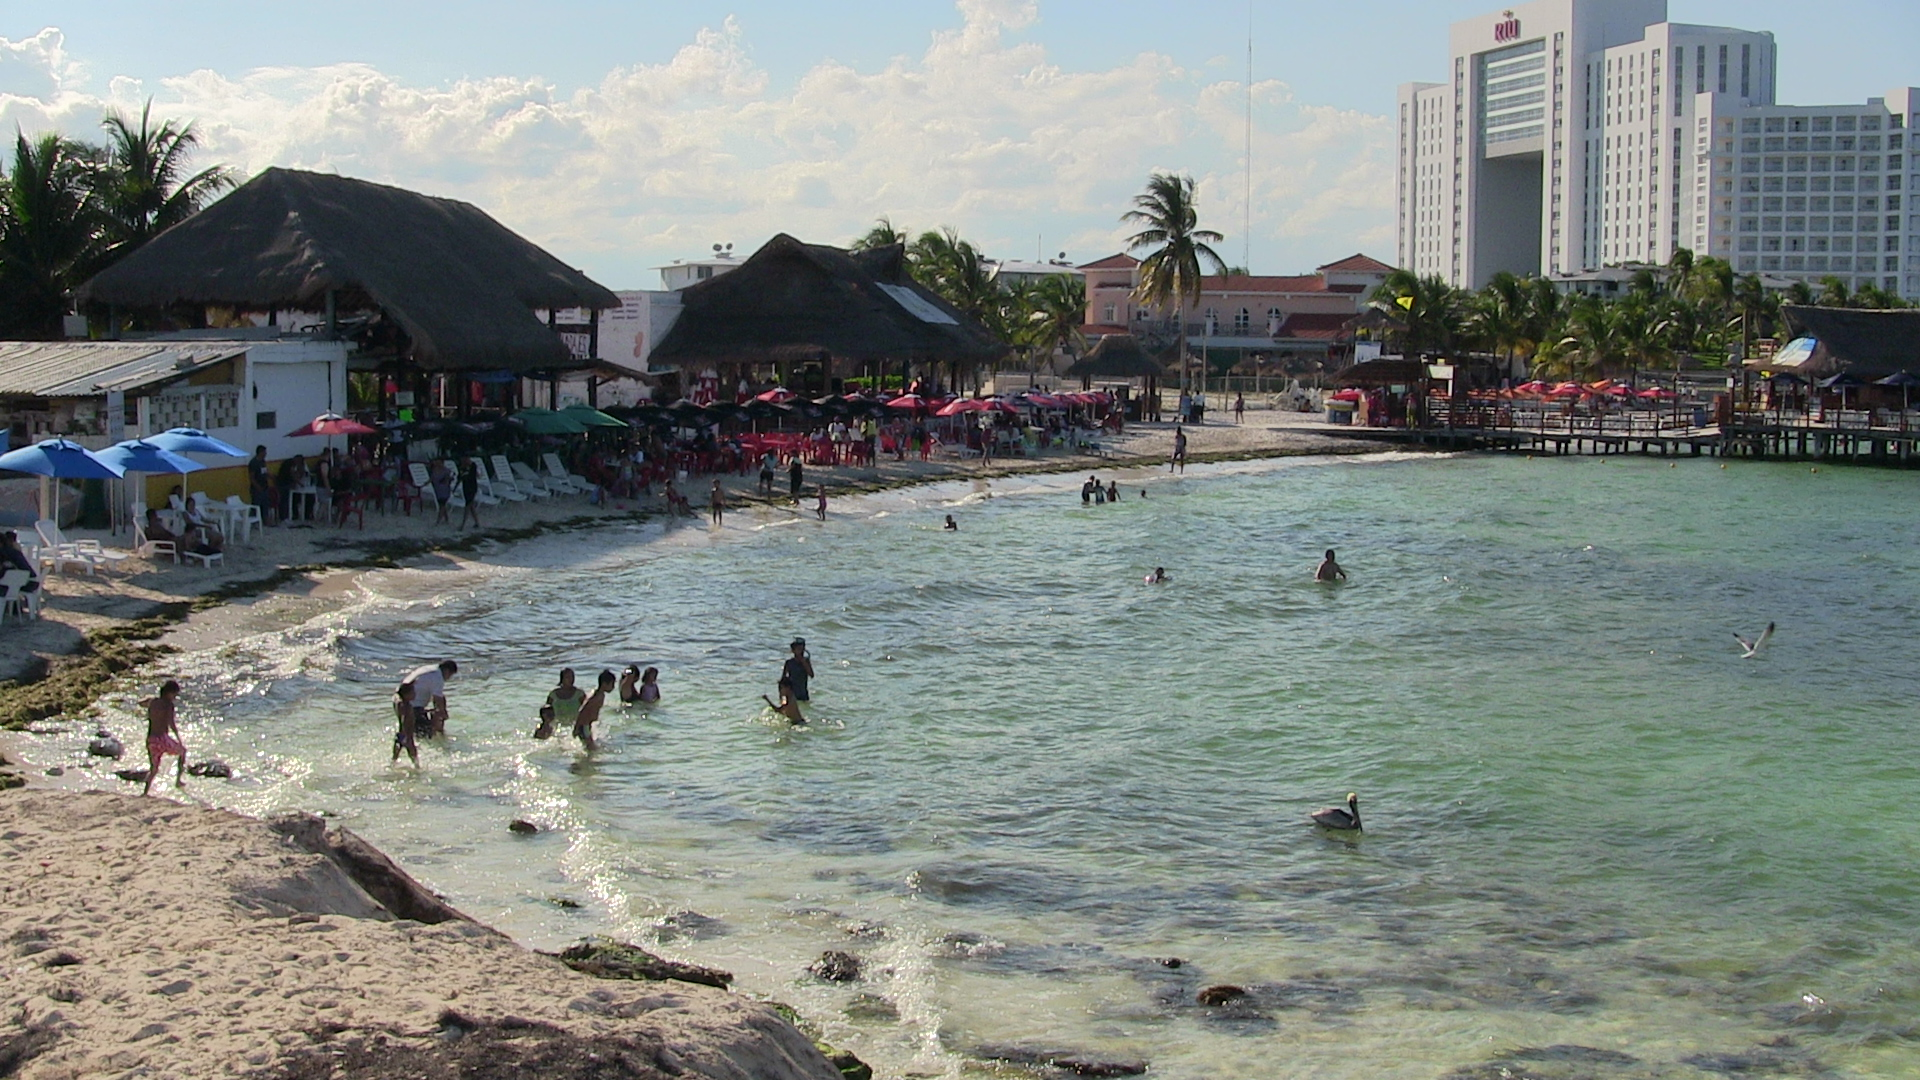 Playa Tortuga in Cancun, Mexico